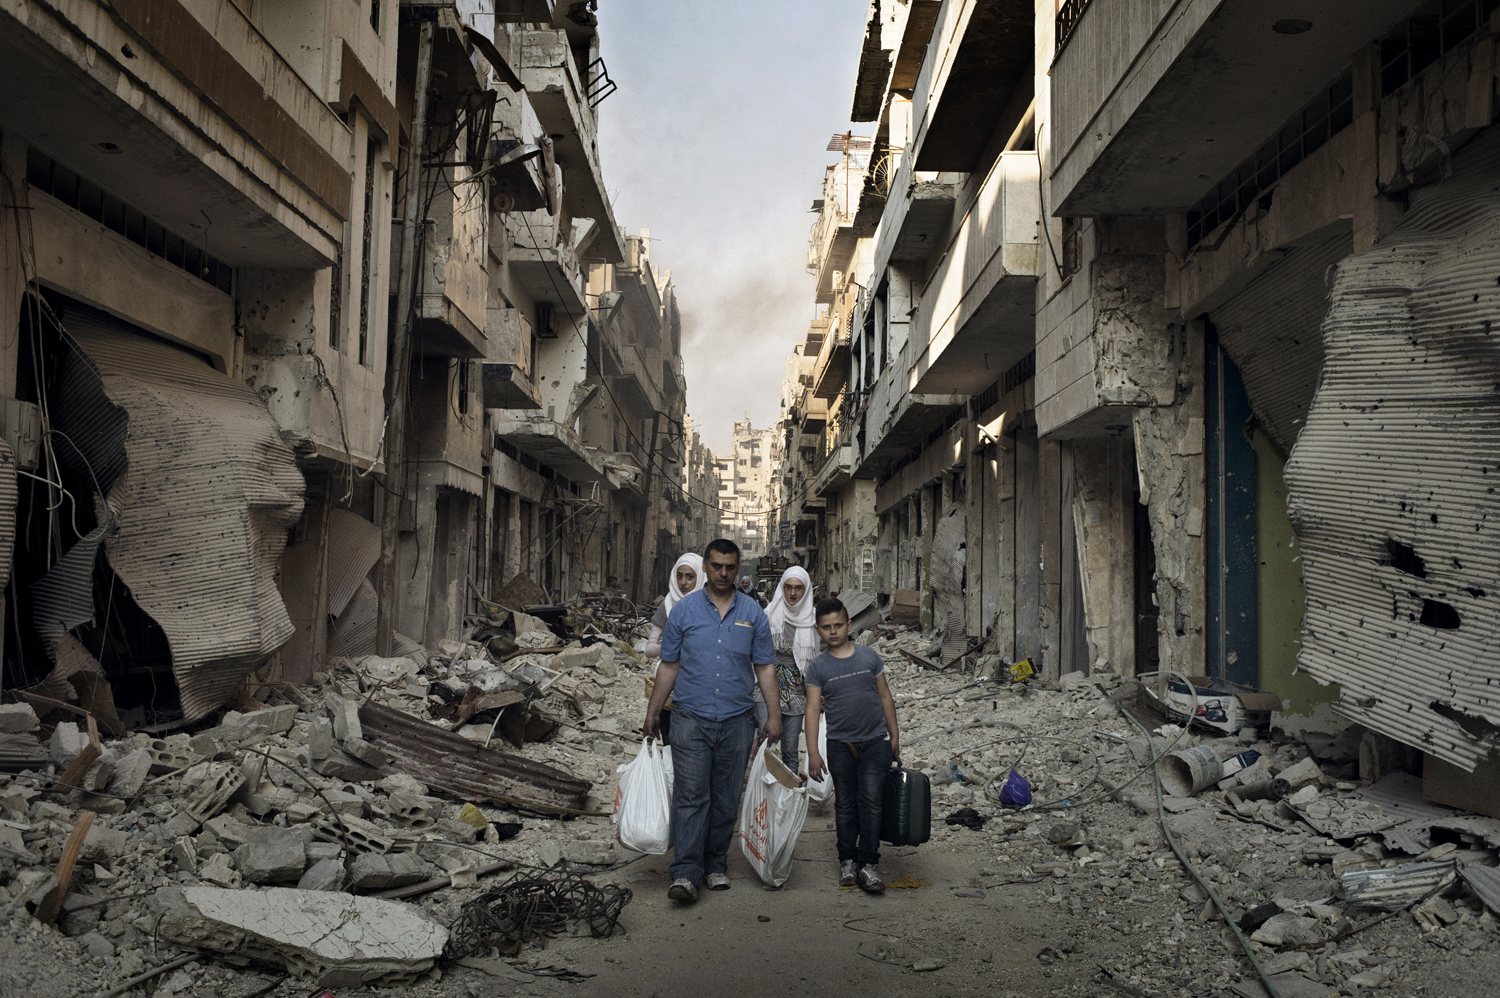 Residents walk down a street after collecting their belongings in the Qabaris neighborhood of the Old City of Homs. May 12, 2014.